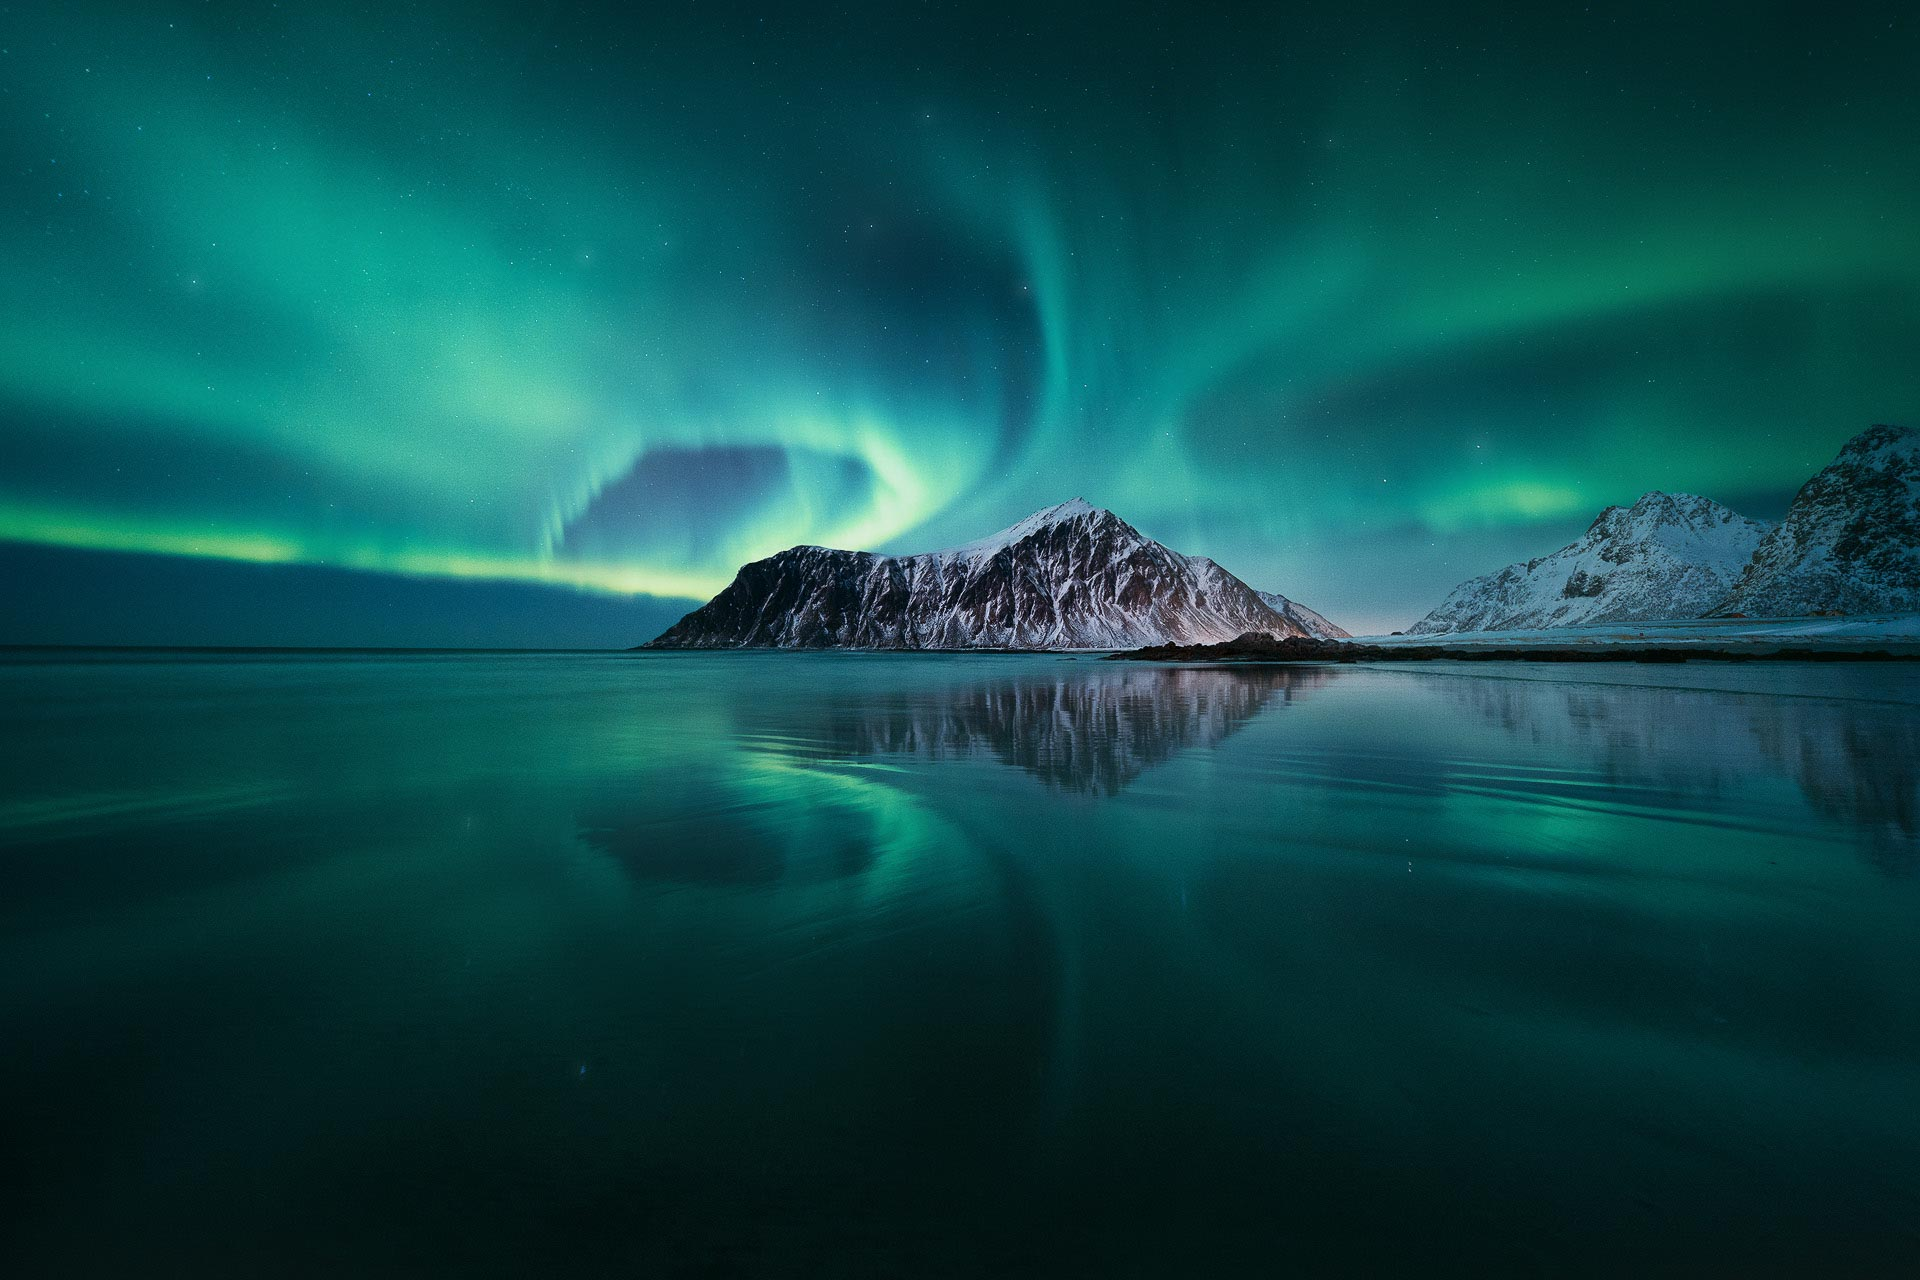 Northern Lights Norway Lofoten Islands Skagsanden Aurora Borealis